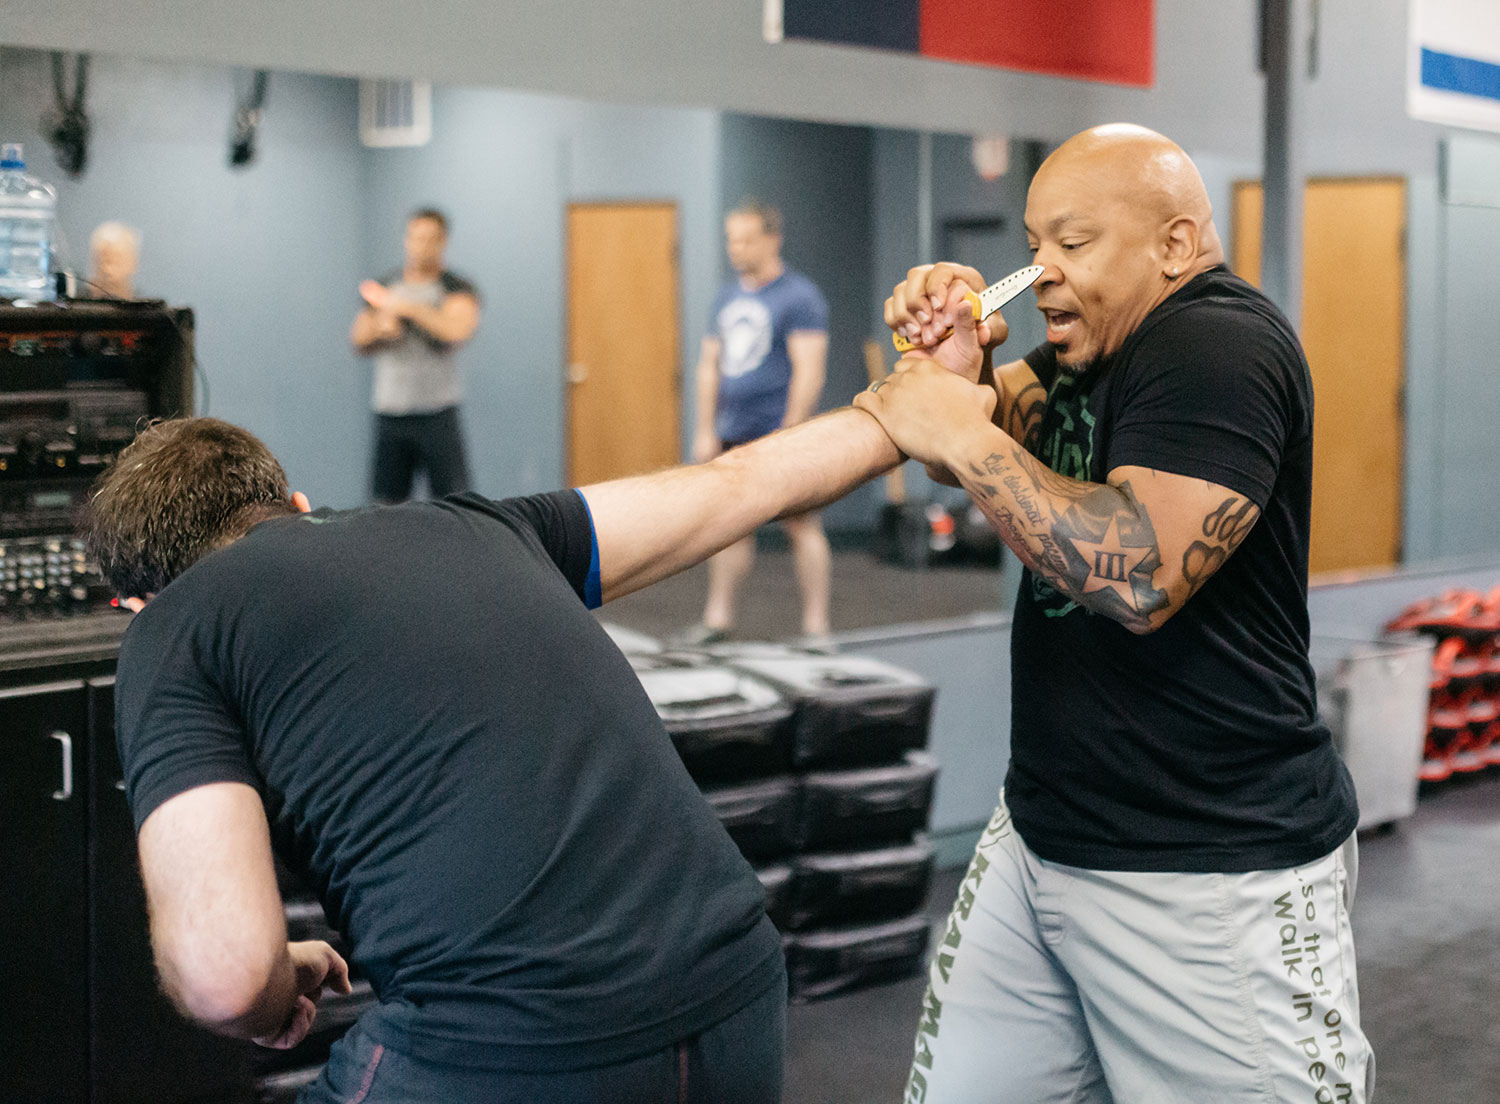 Erik Hicks, owner and instructor at Krav Maga Dallas